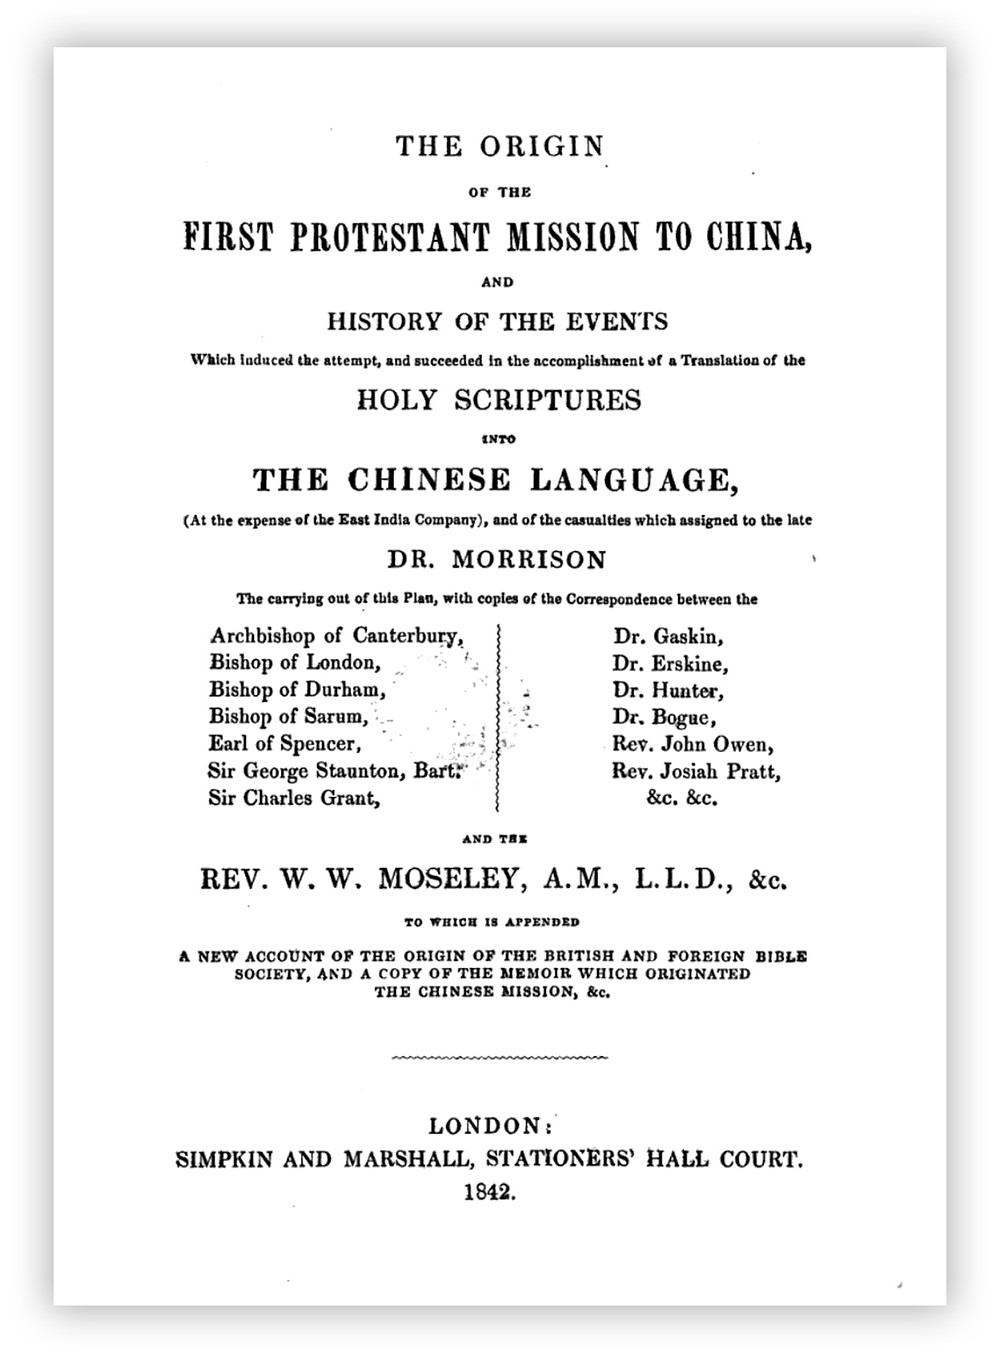 Title page of Rev. Dr. William Willis Moseley's book on the Protestant mission to China.